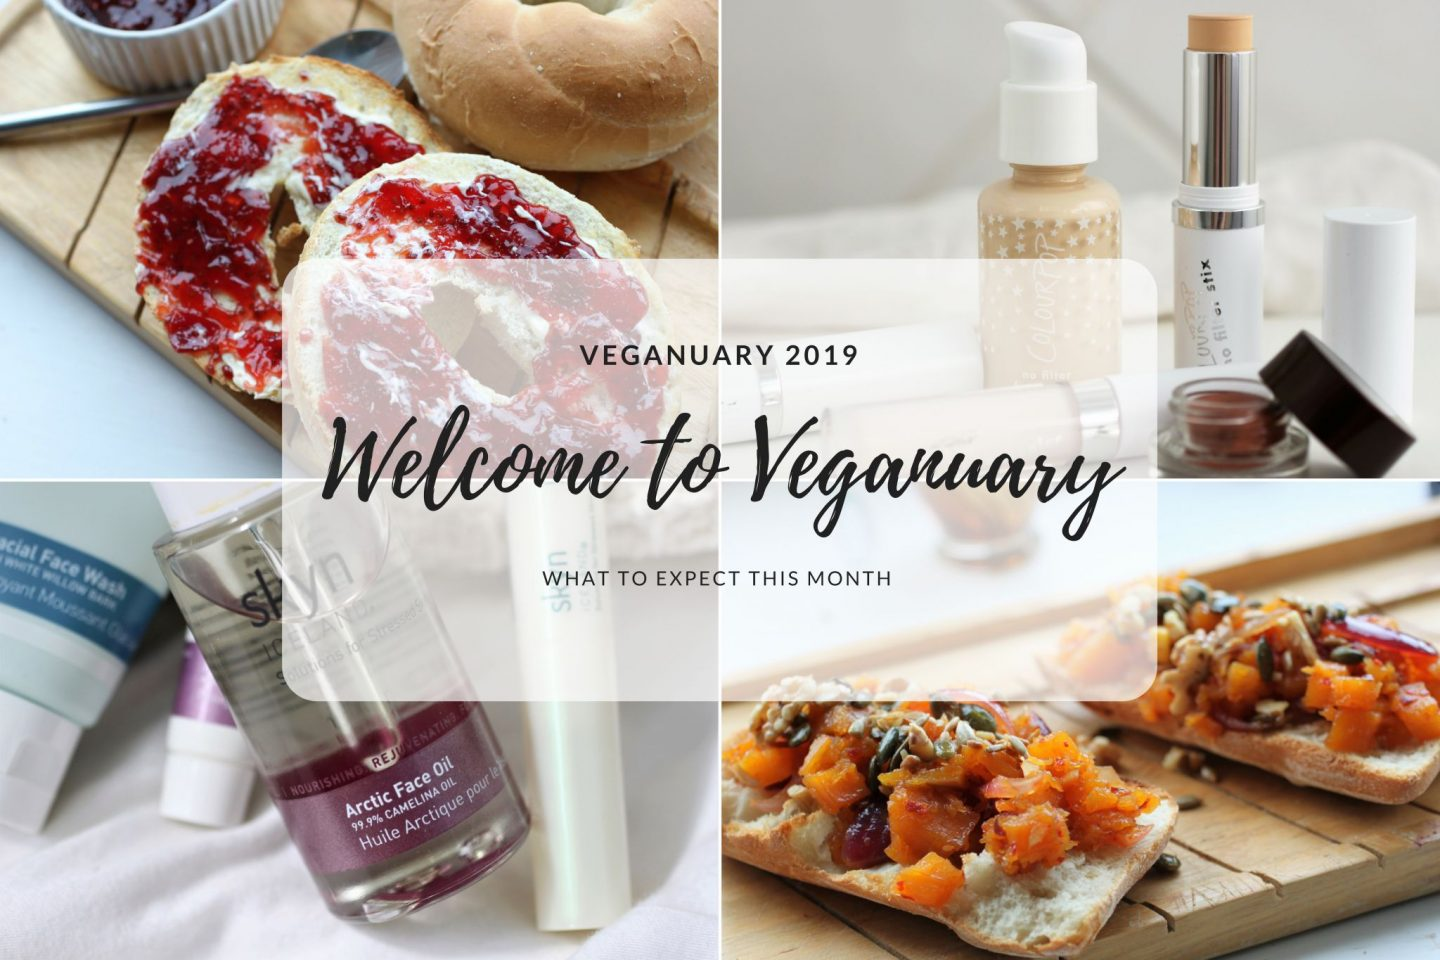 Welcome to Veganuary!